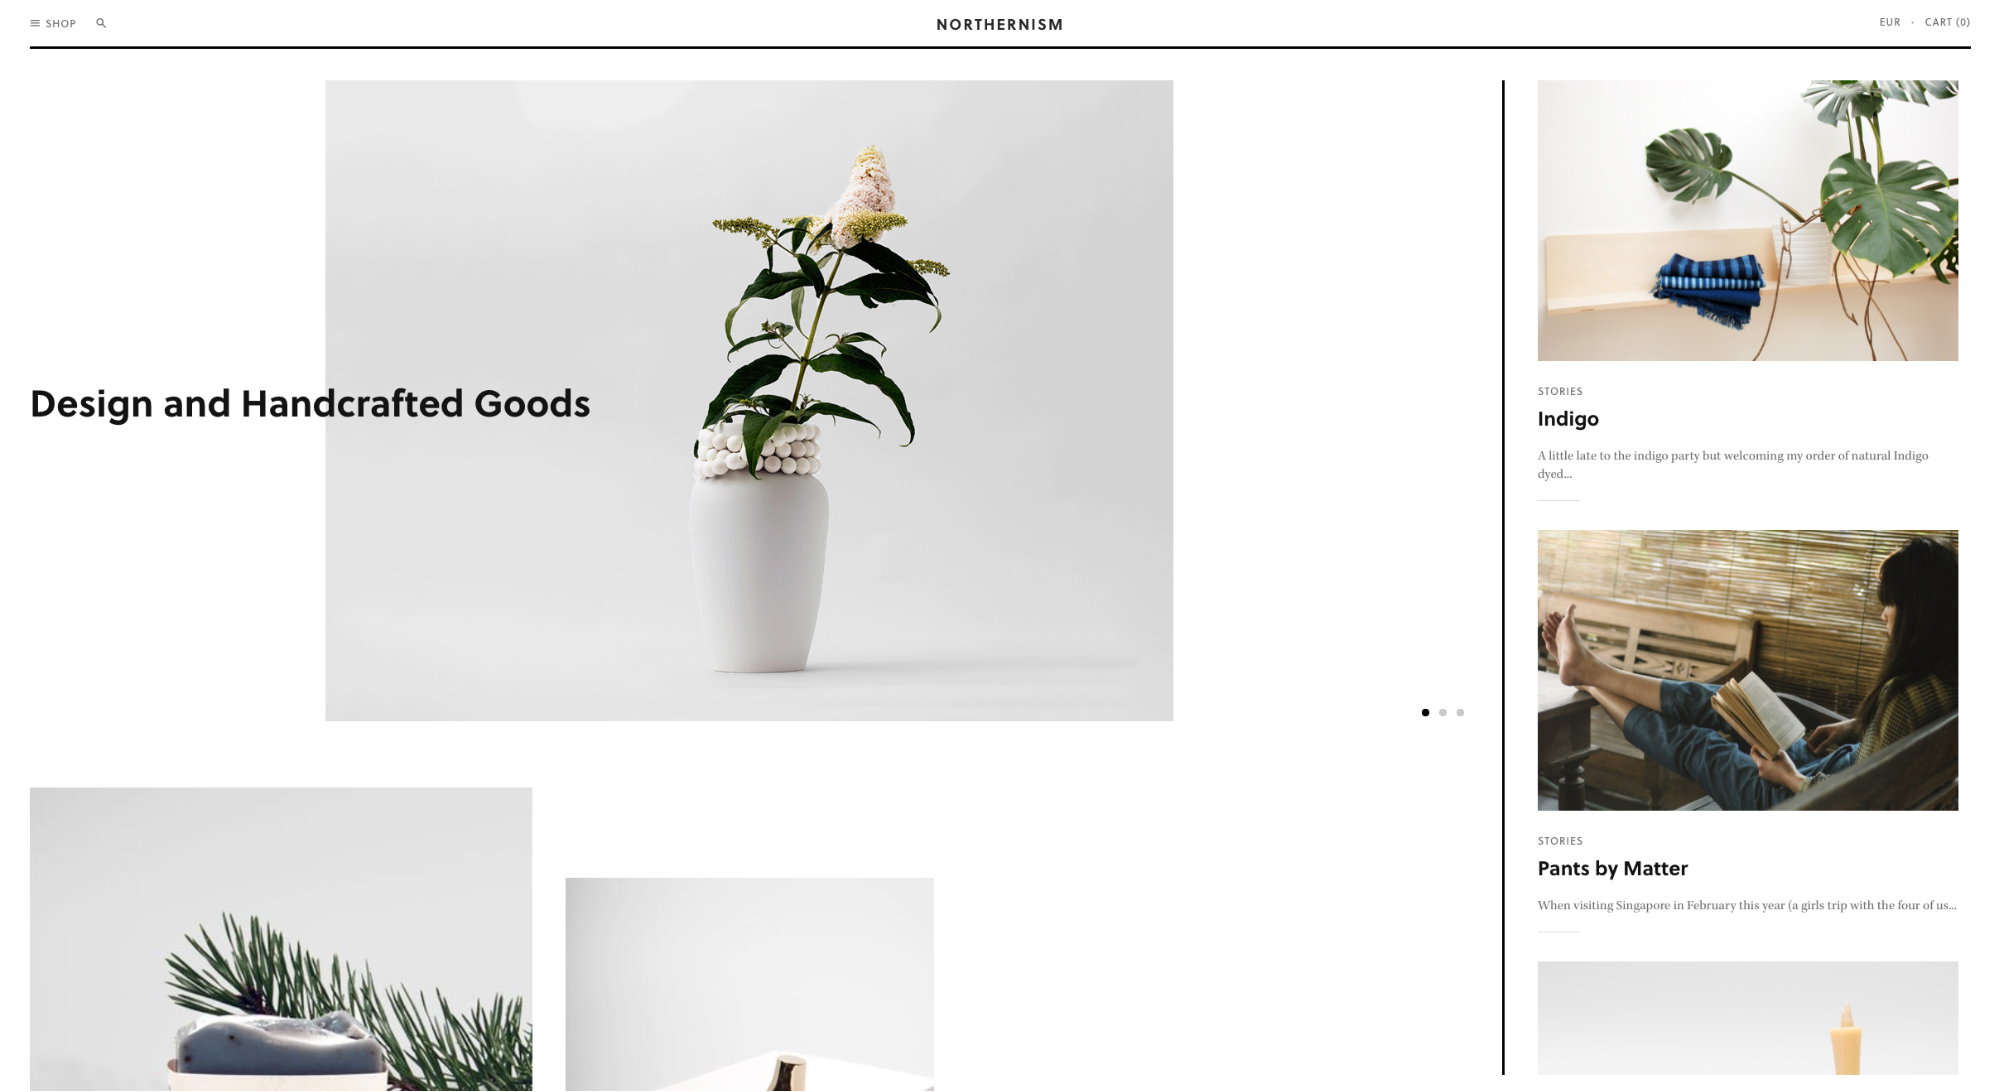 Ecommerce Websites: Northernism Homepage